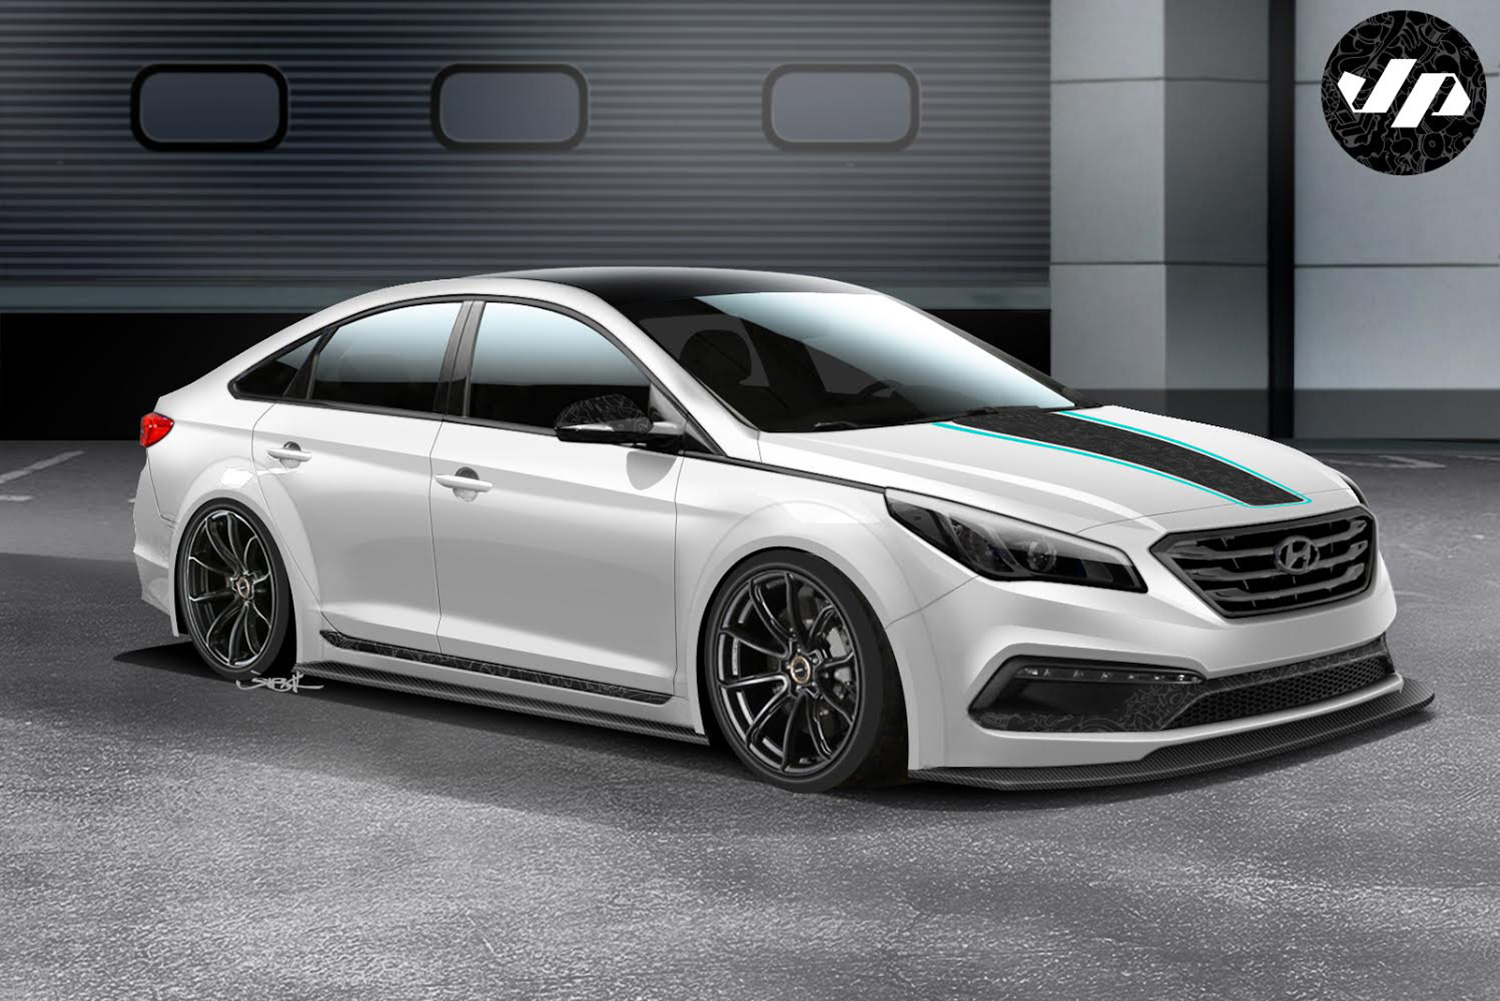 The 2nd rendering with a subtle touch of art for SEMA. Rendering by Jon Sibal.